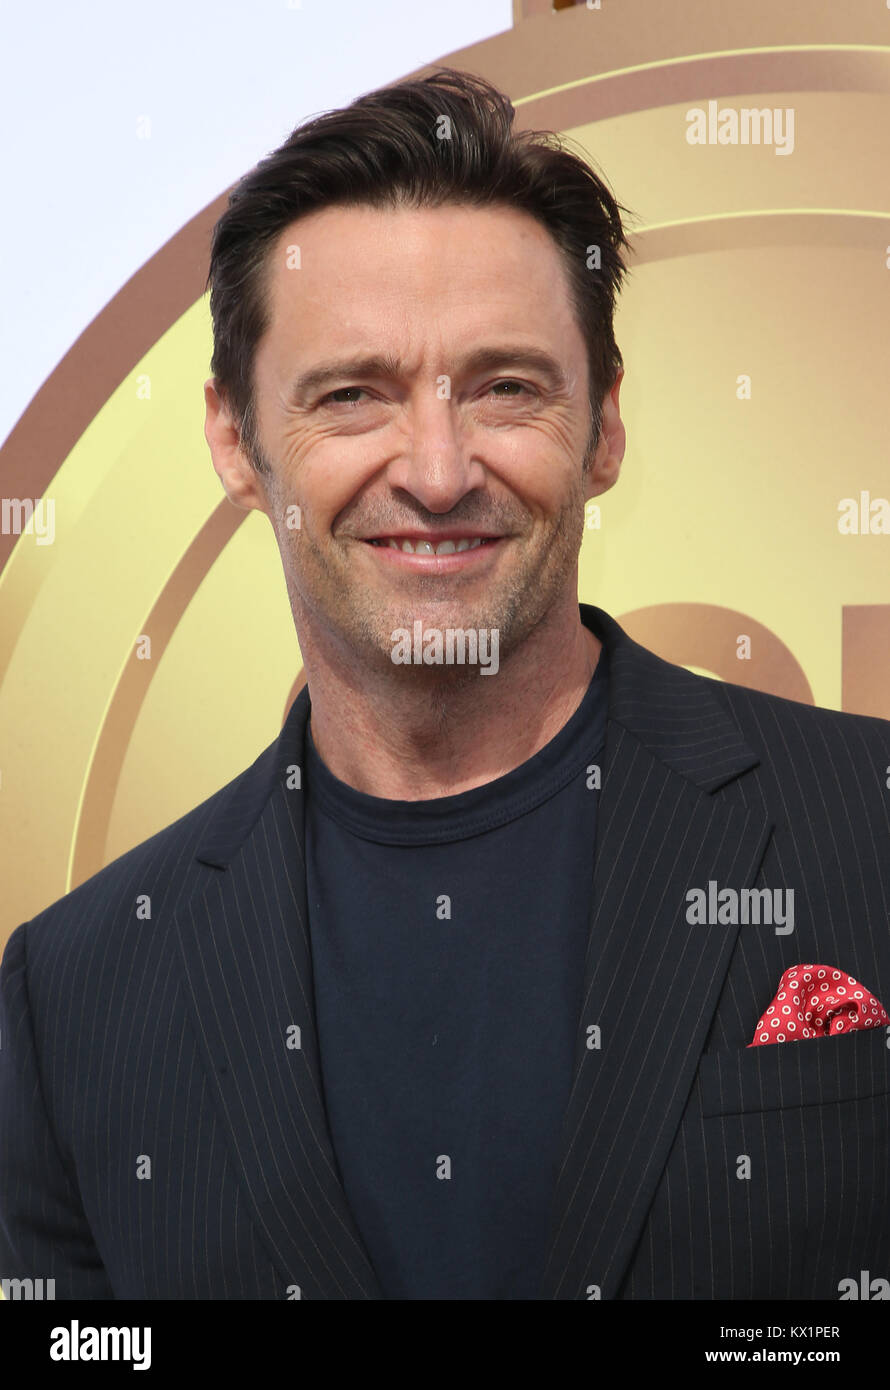 West Hollywood, Ca. 6th Jan, 2018. Hugh Jackman at the Gold Meets Golden 5th Anniversary party at The House On Sunset - Stock Image